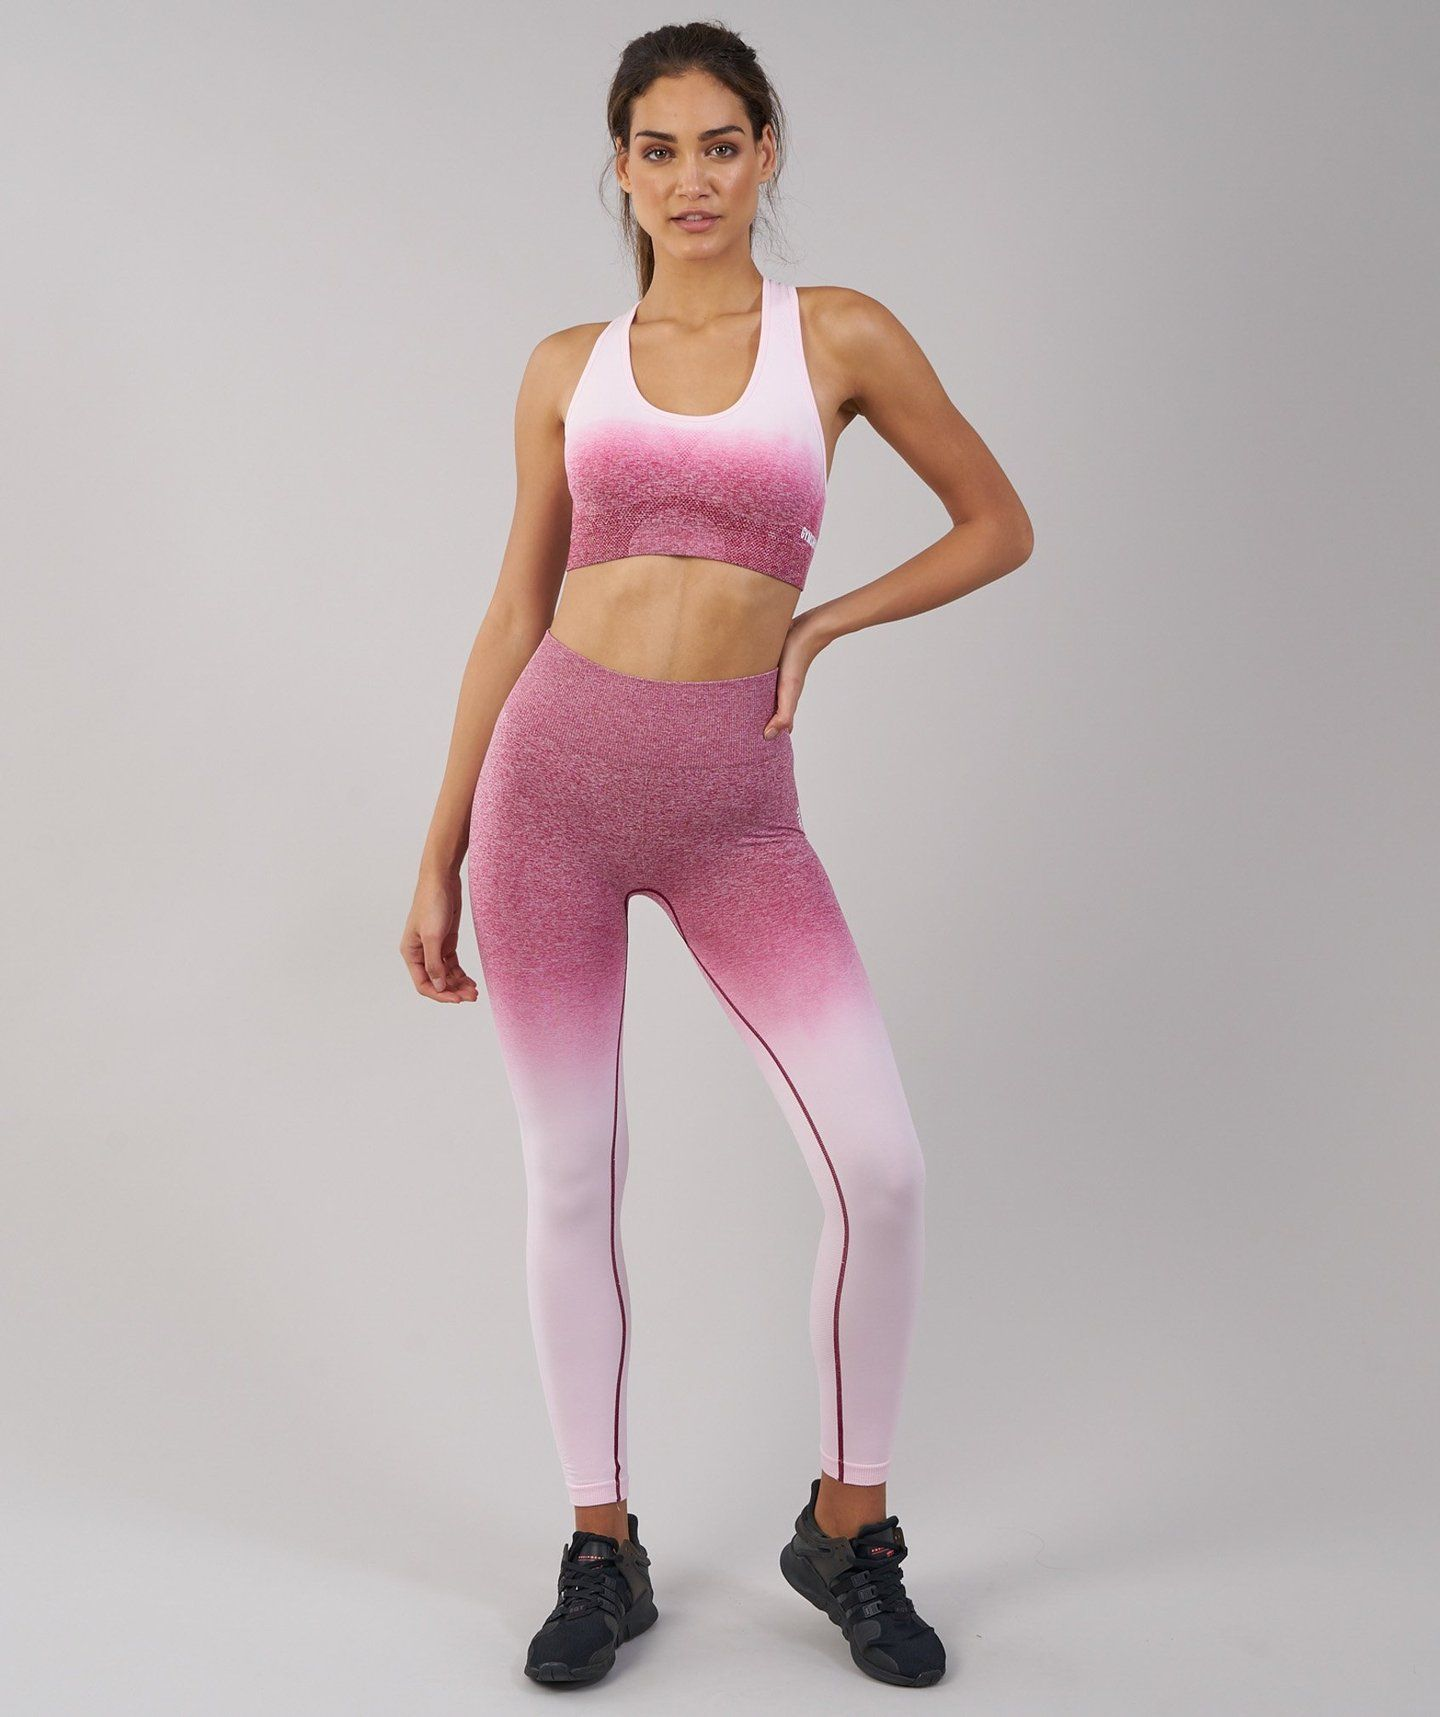 7536310aafedc Gymshark Ombre Seamless Leggings - Chalk Pink/Beet | Leggings ...